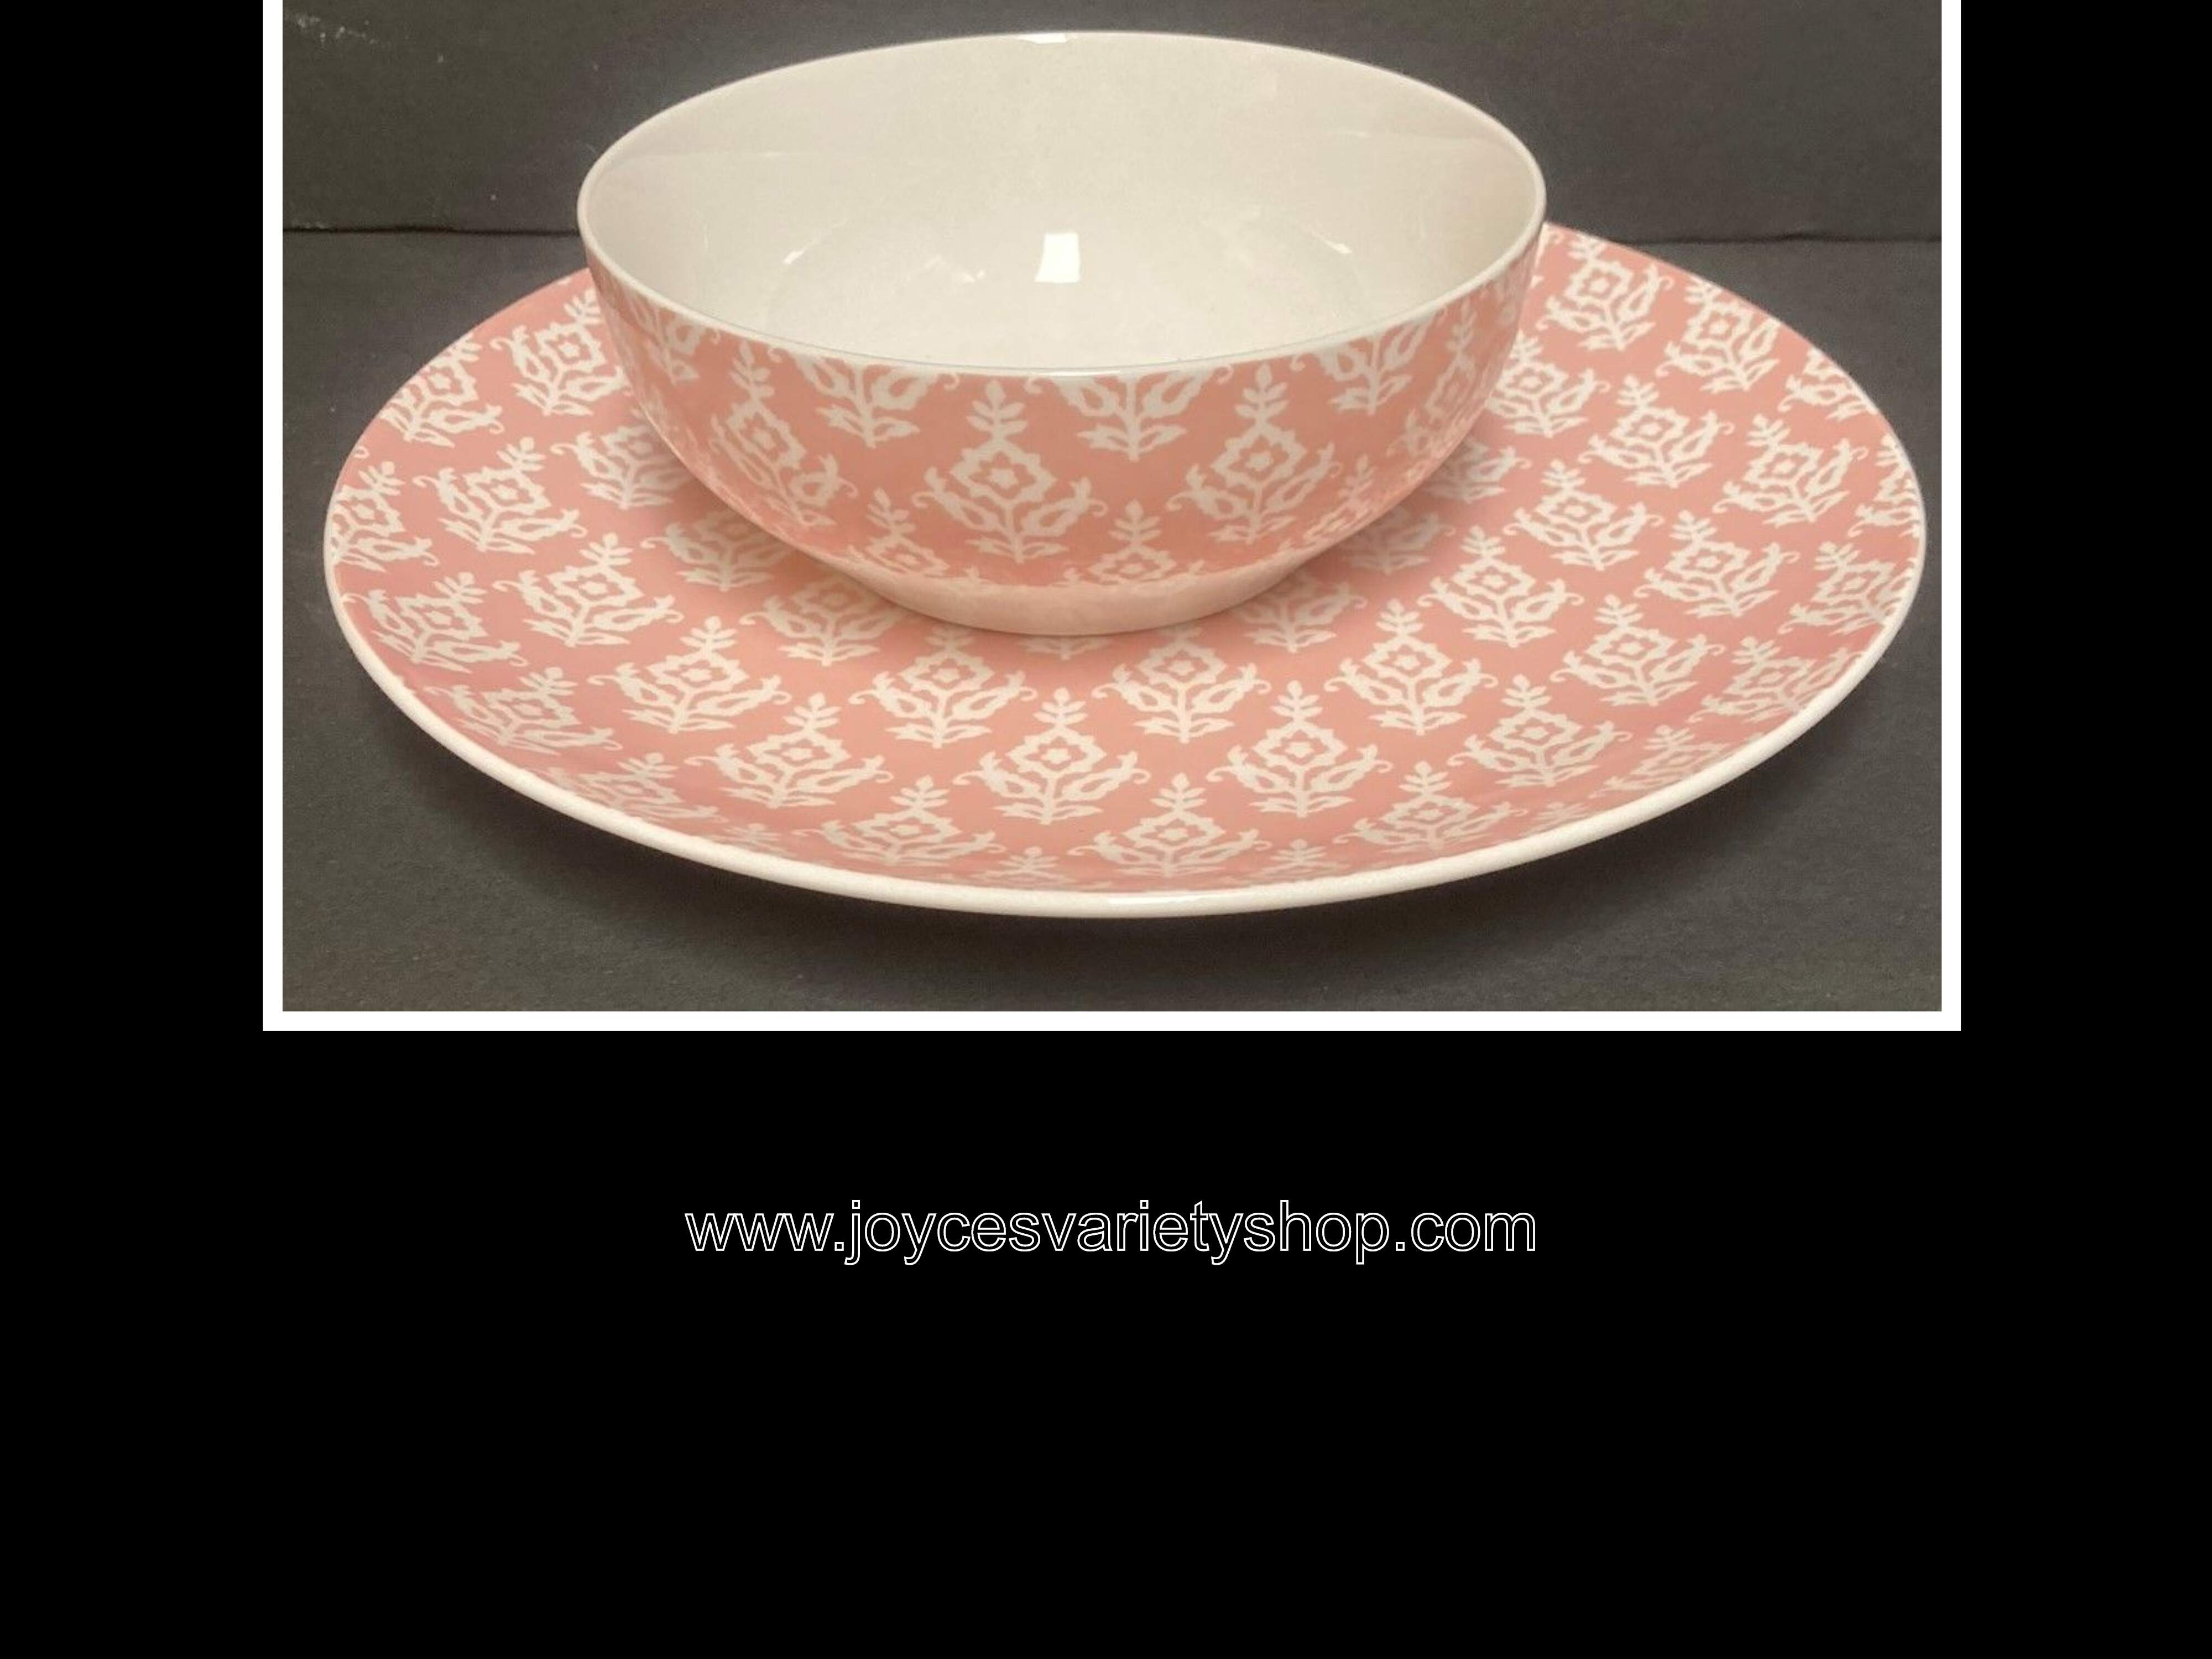 Mainstays Pink India Pearl Blush Dinner Plates & Salad Bowls Set of 4